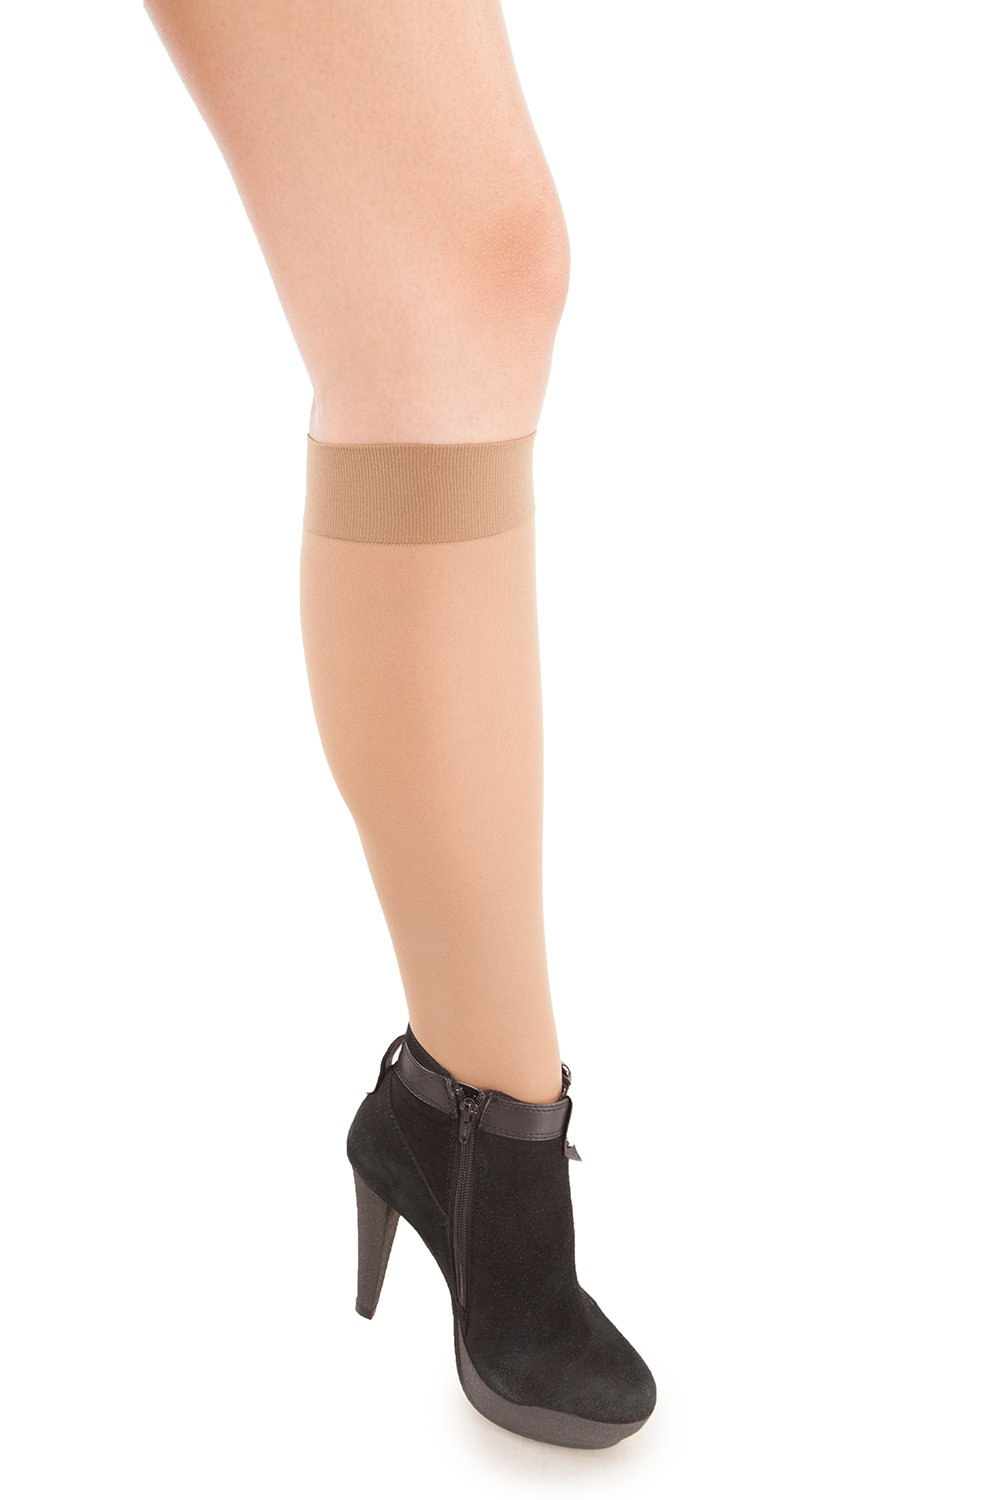 Sheer Knee Highs - Medium Compression - 20 to 22 mmHG - Gabrialla